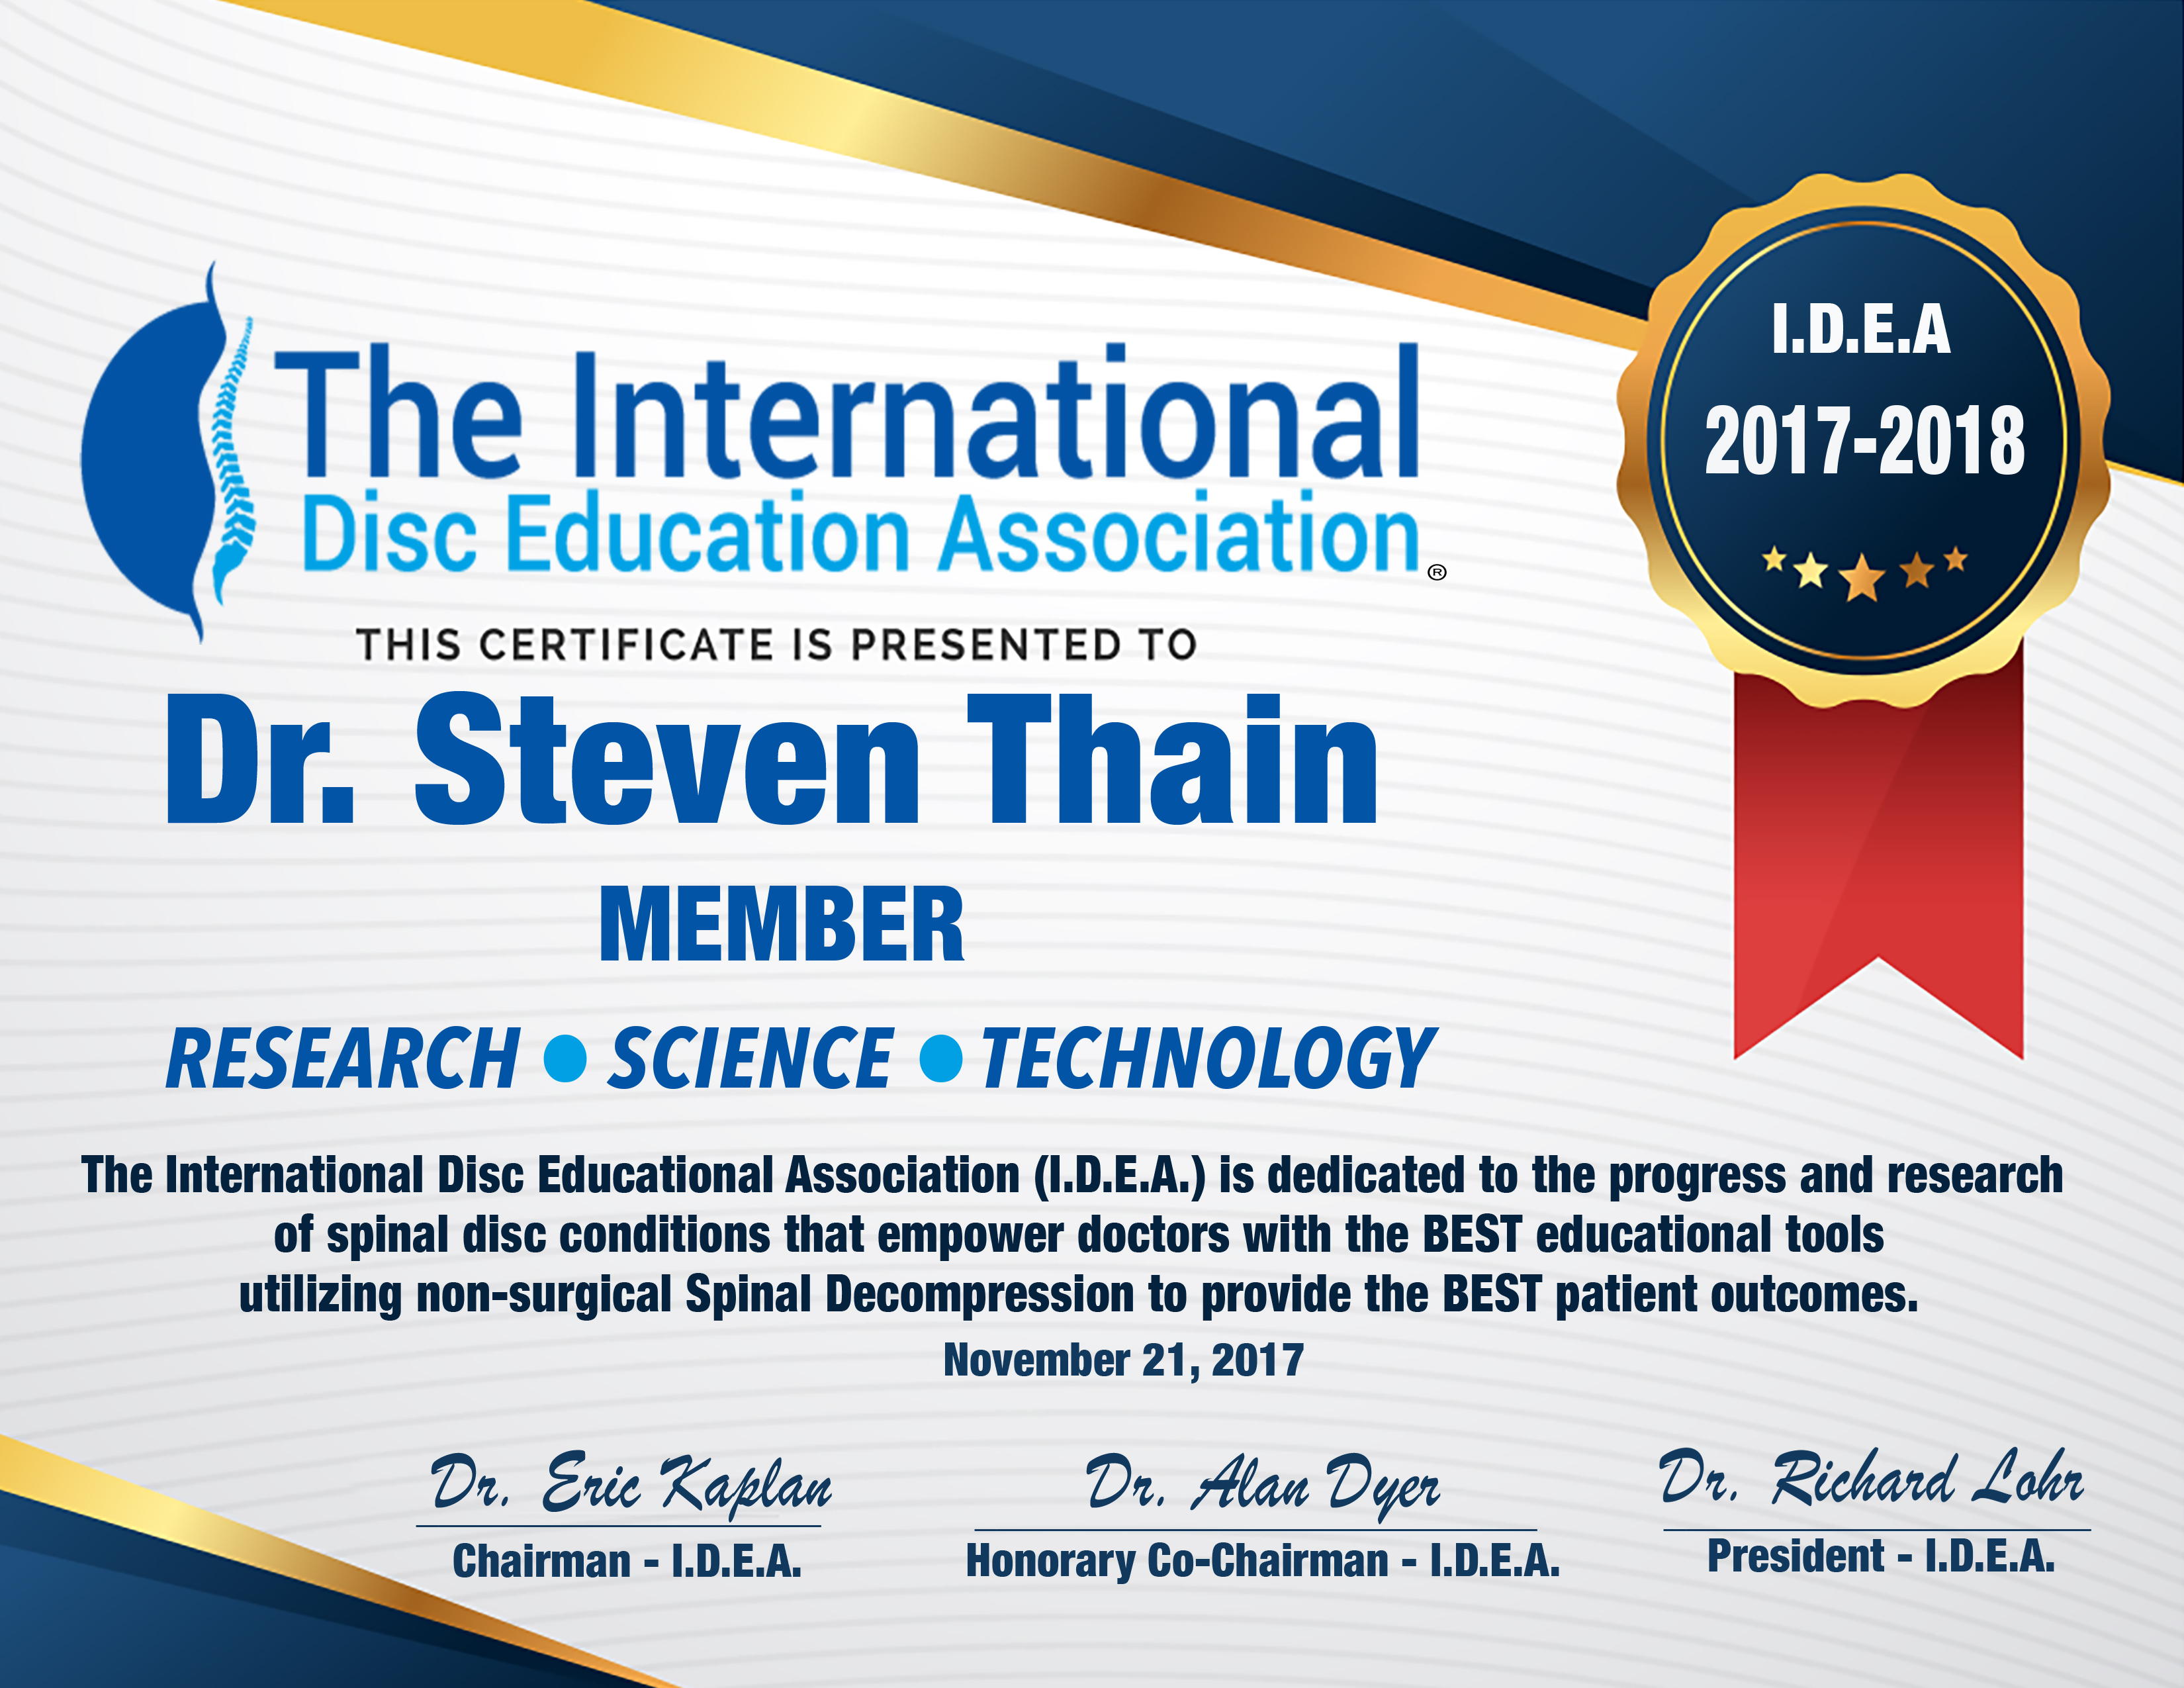 International Disc Education Association